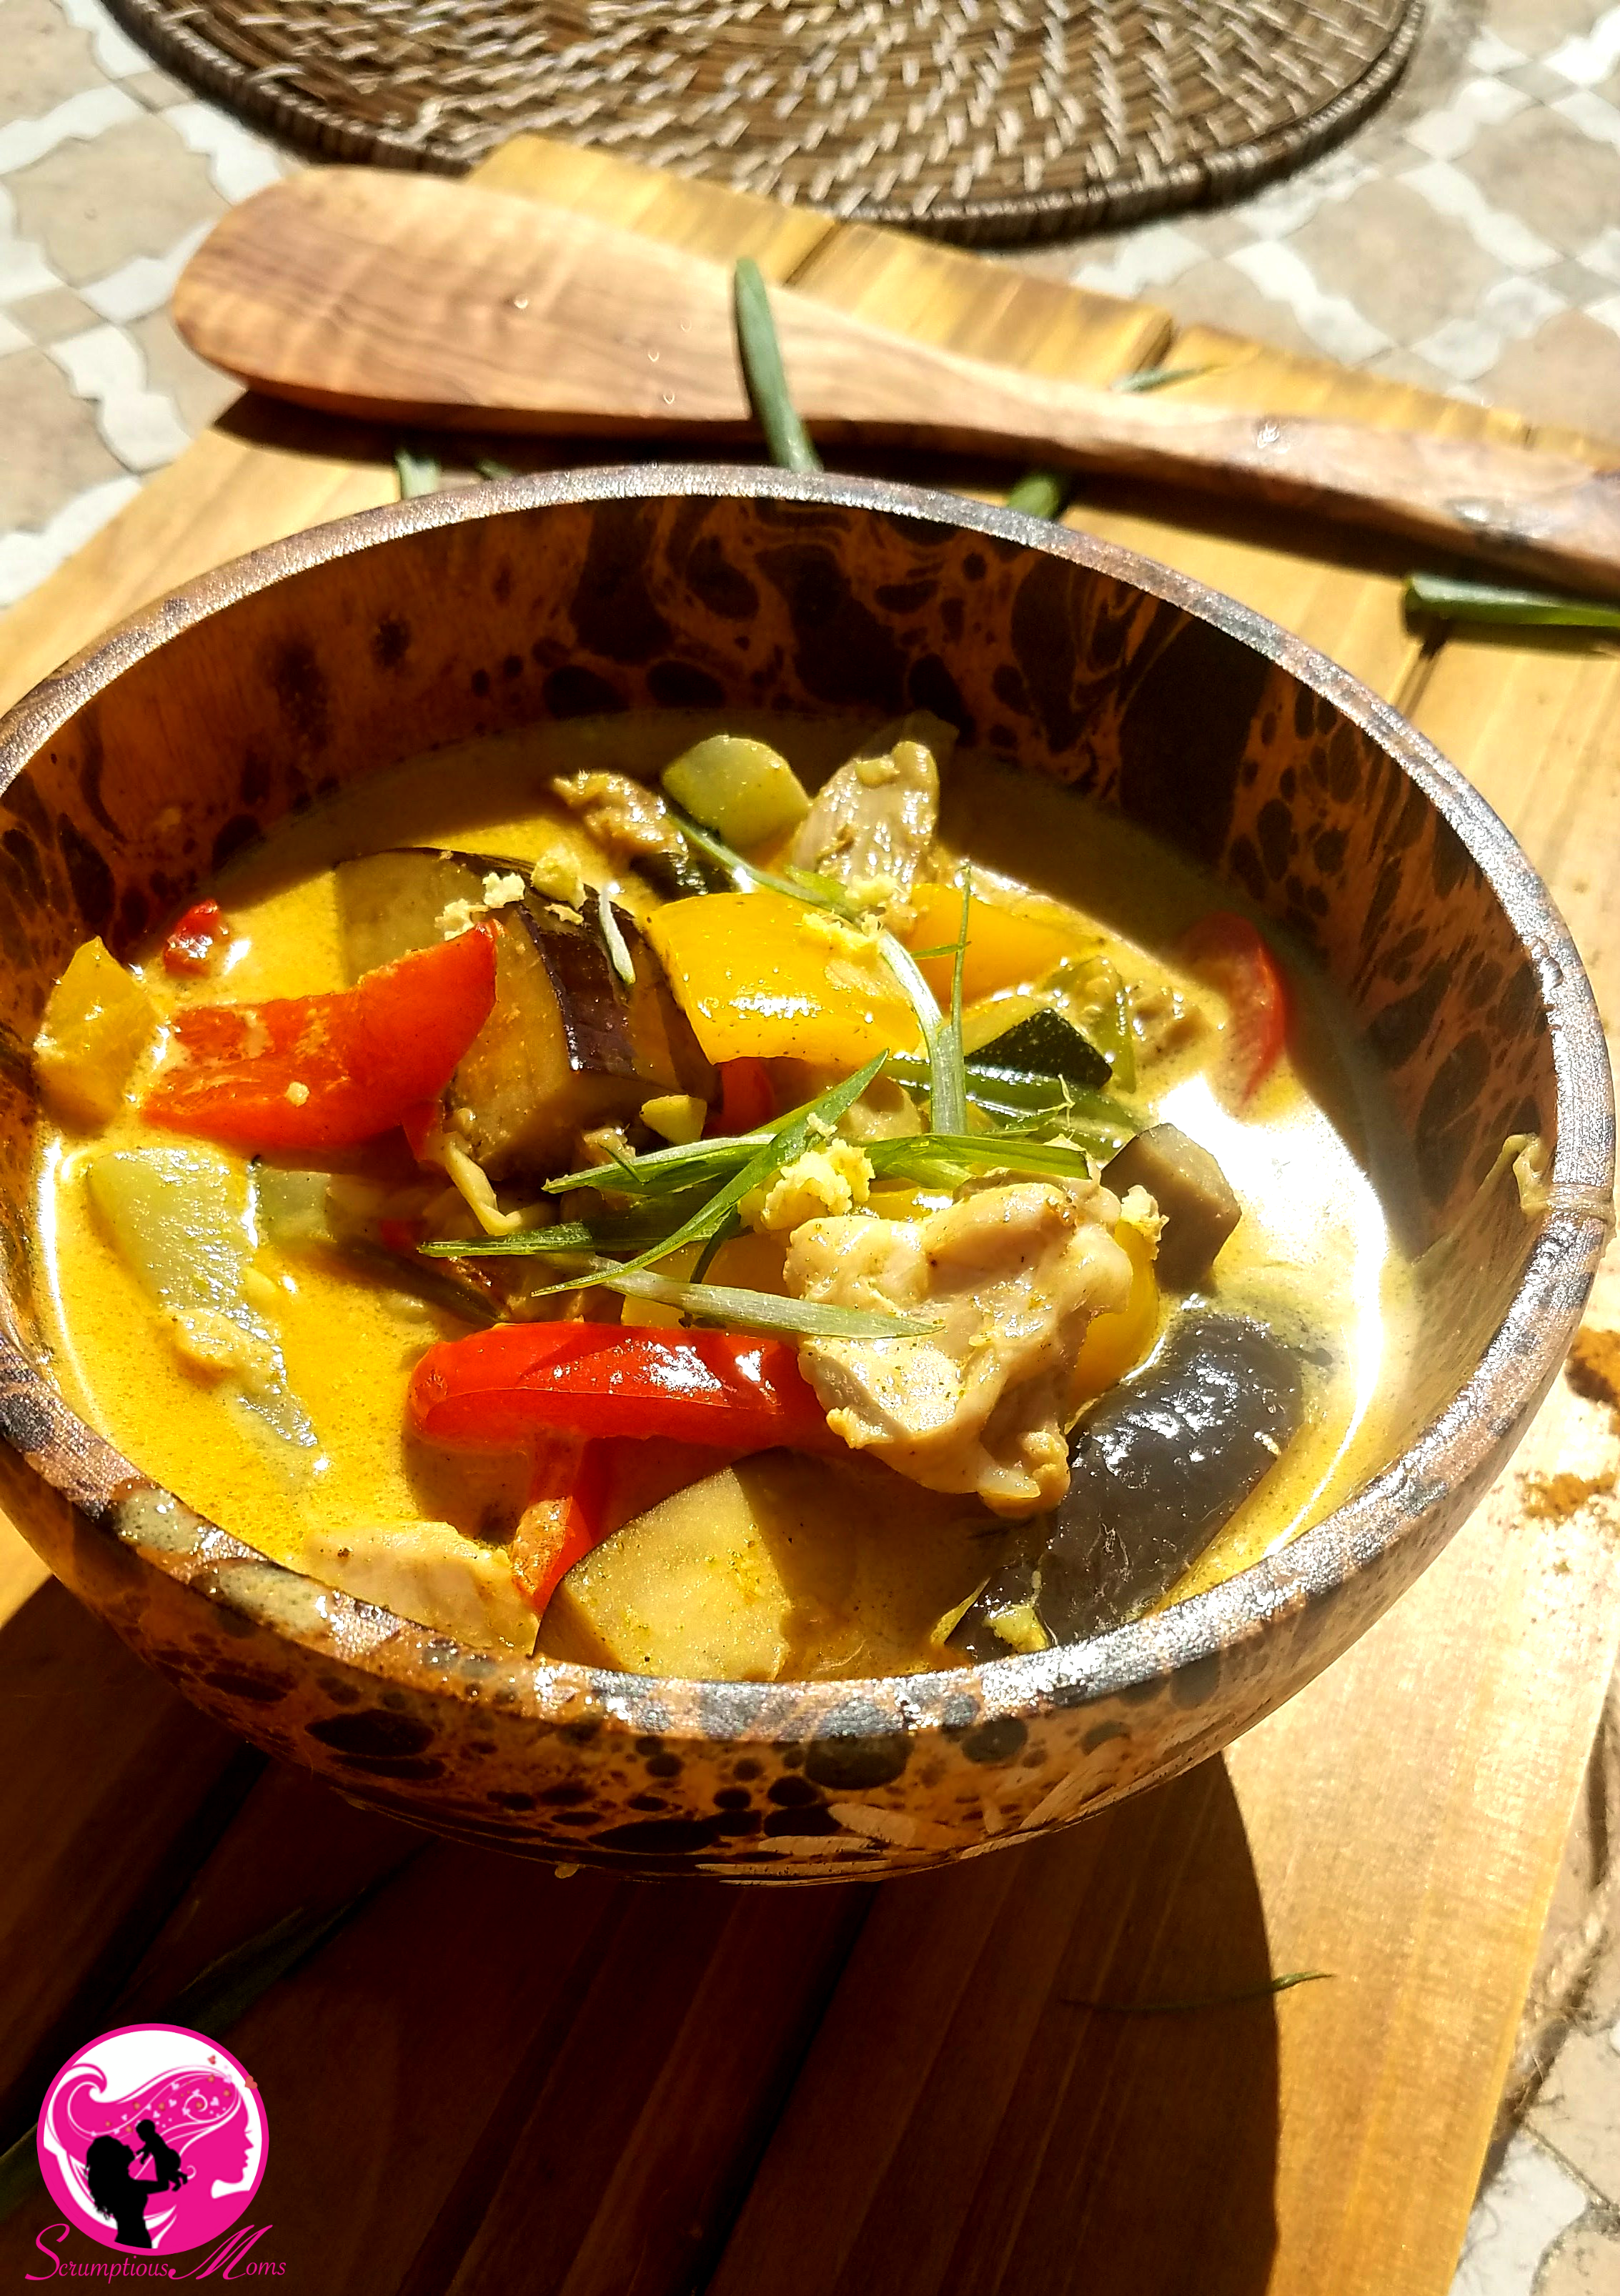 Bowl of yellow coconut curry with chicken and vegetables